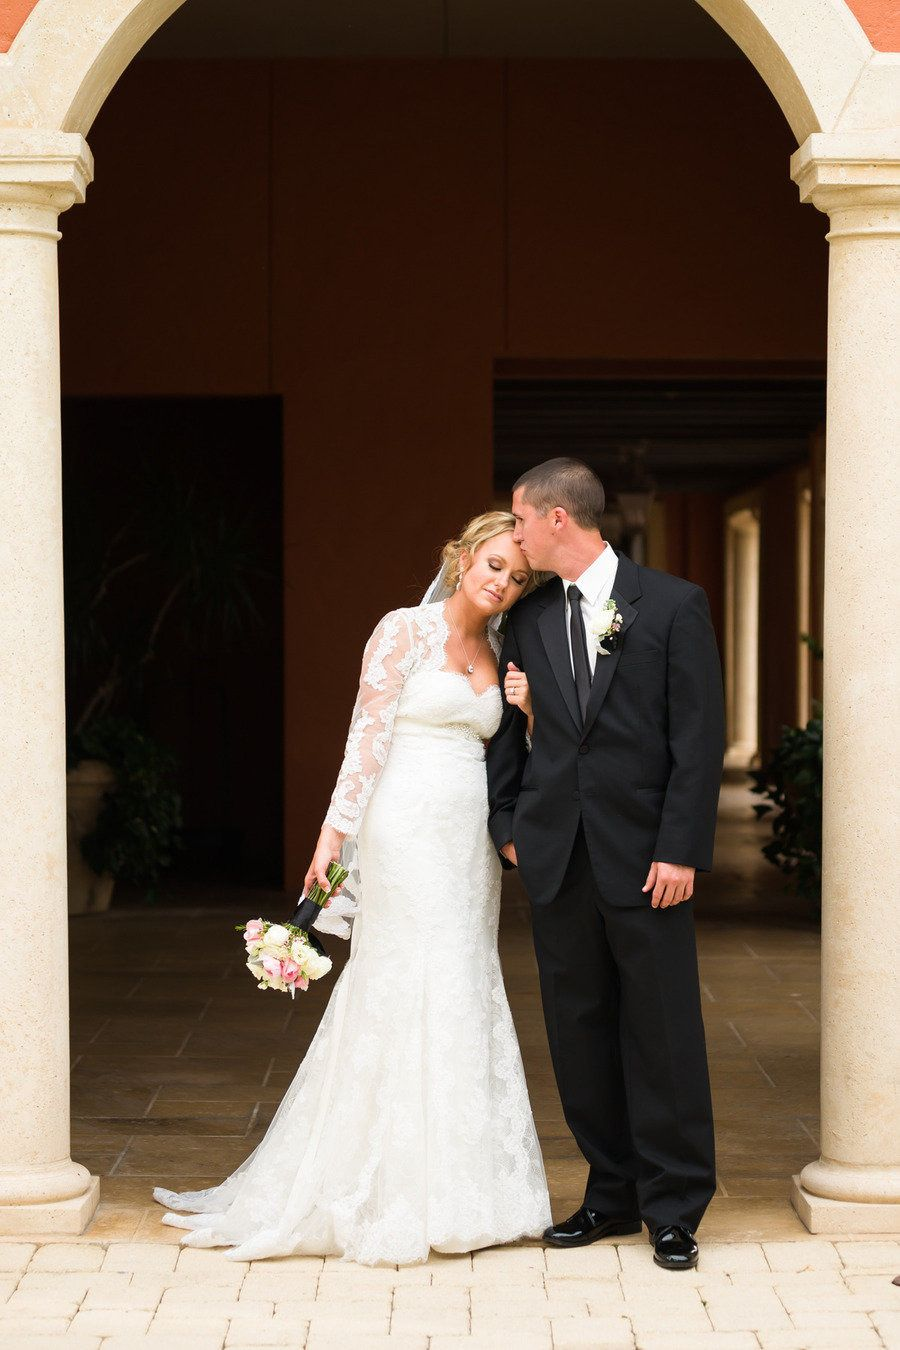 Love It Florida Style: Naples Florida Wedding At The Club At Mediterra From